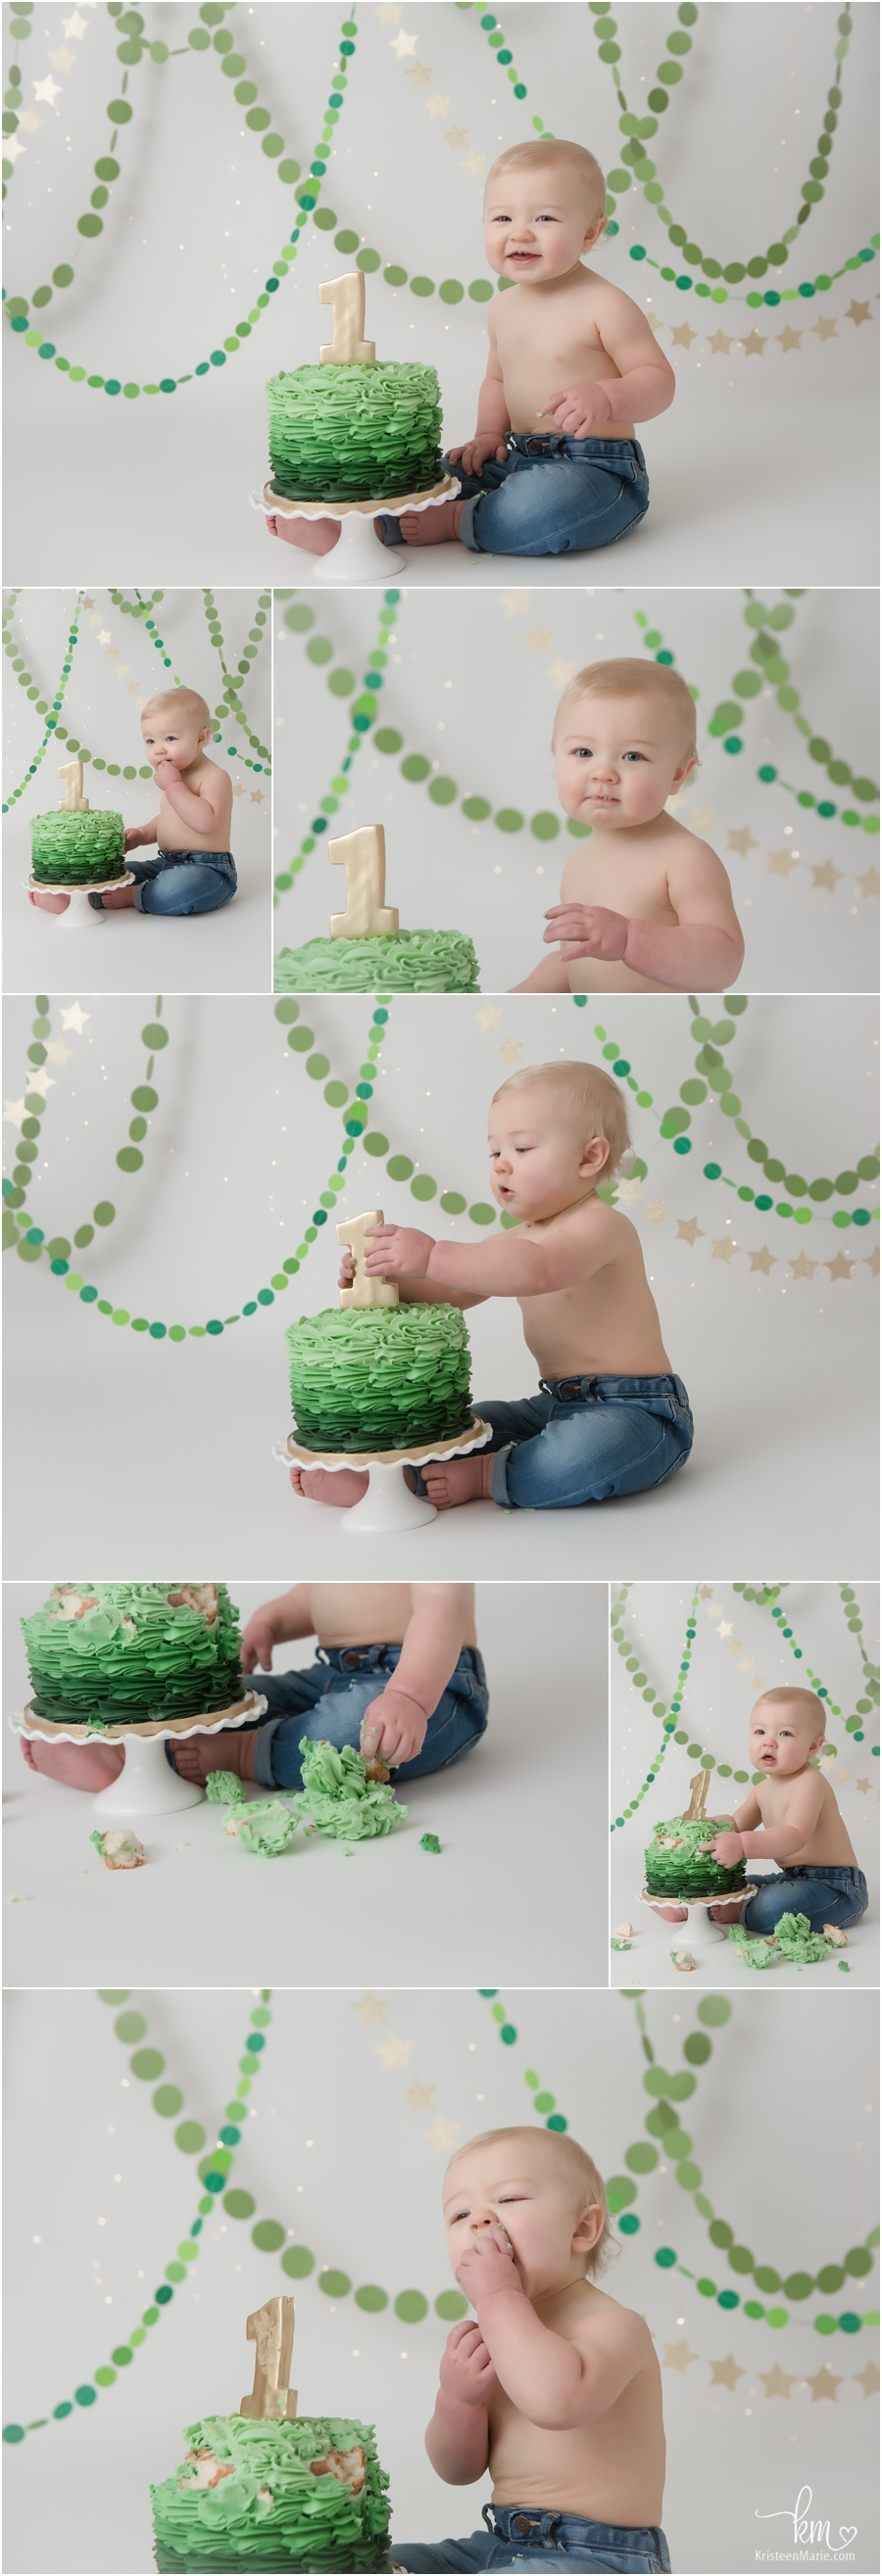 green ombre and gold 1st birthday cake smash session - first birthday theme